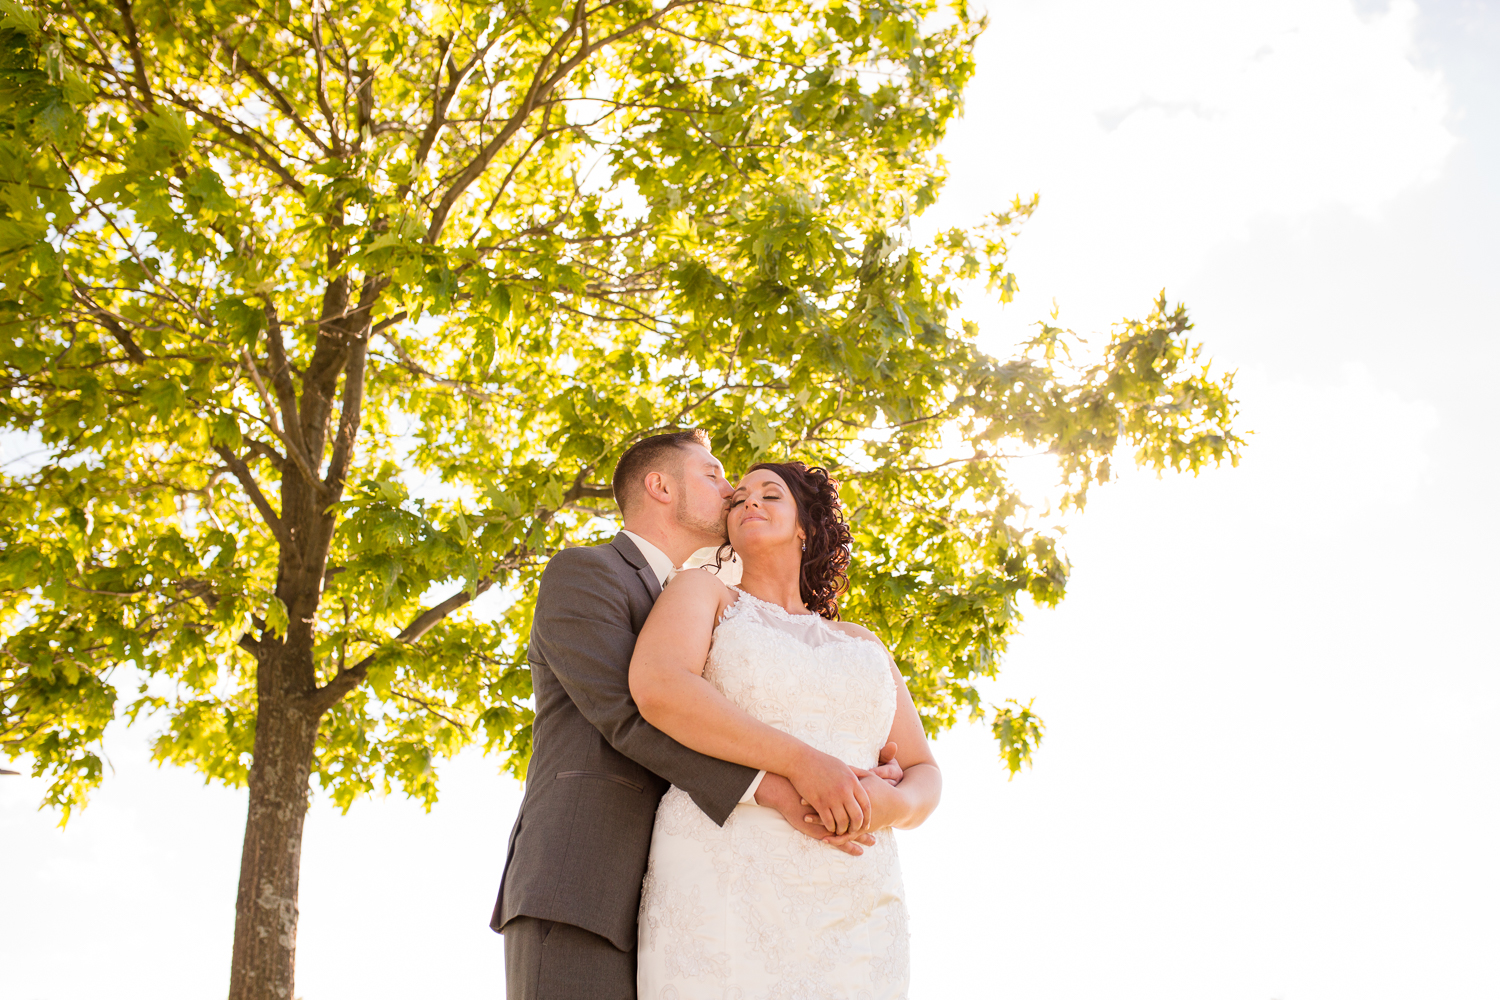 An image looking up at the bride and groom from below. There is a tree above them. The groom has his arms wrapped around the bride and is kissing her.